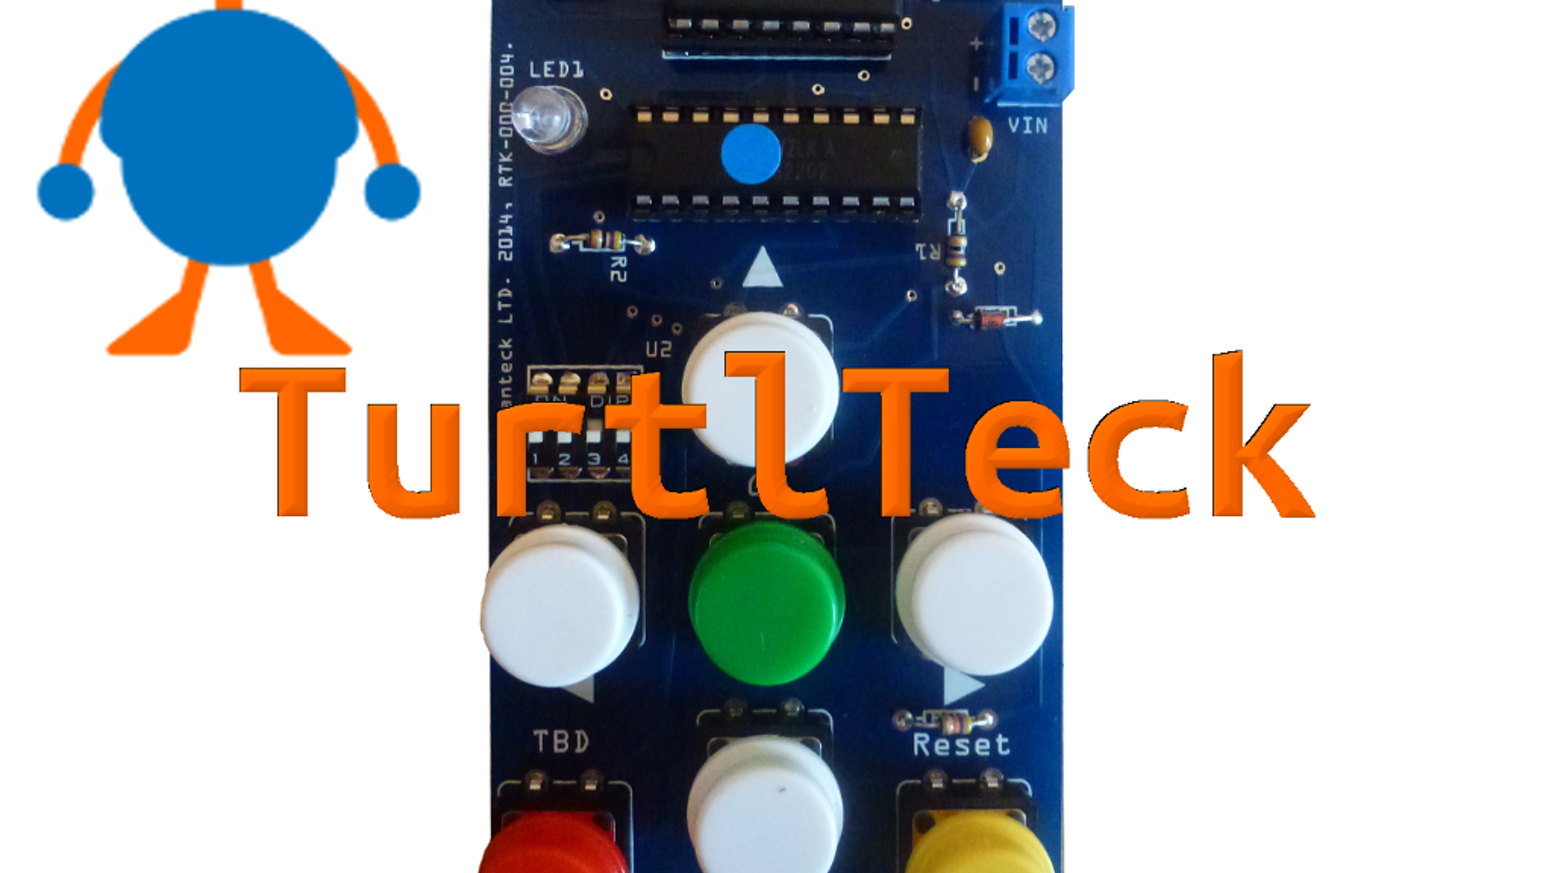 Turtlteck By Ryanteck Ltd Faq Kickstarter How To Explain Basic Electronics For Kids A New Way Make Robots Learn Beginner Logic And Programming While Being On Budget